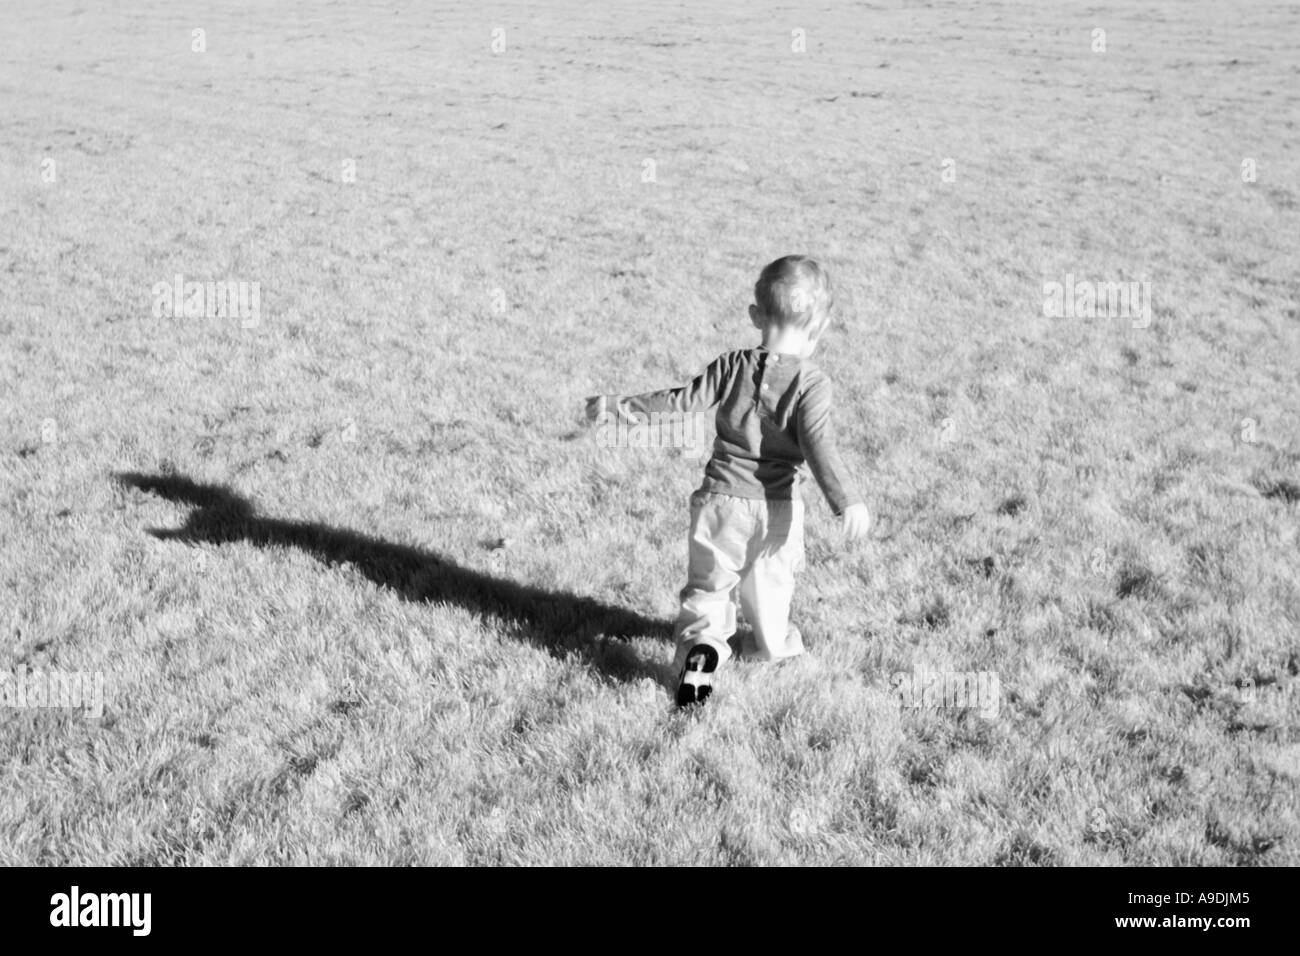 2 year old boy running through the grass. - Stock Image